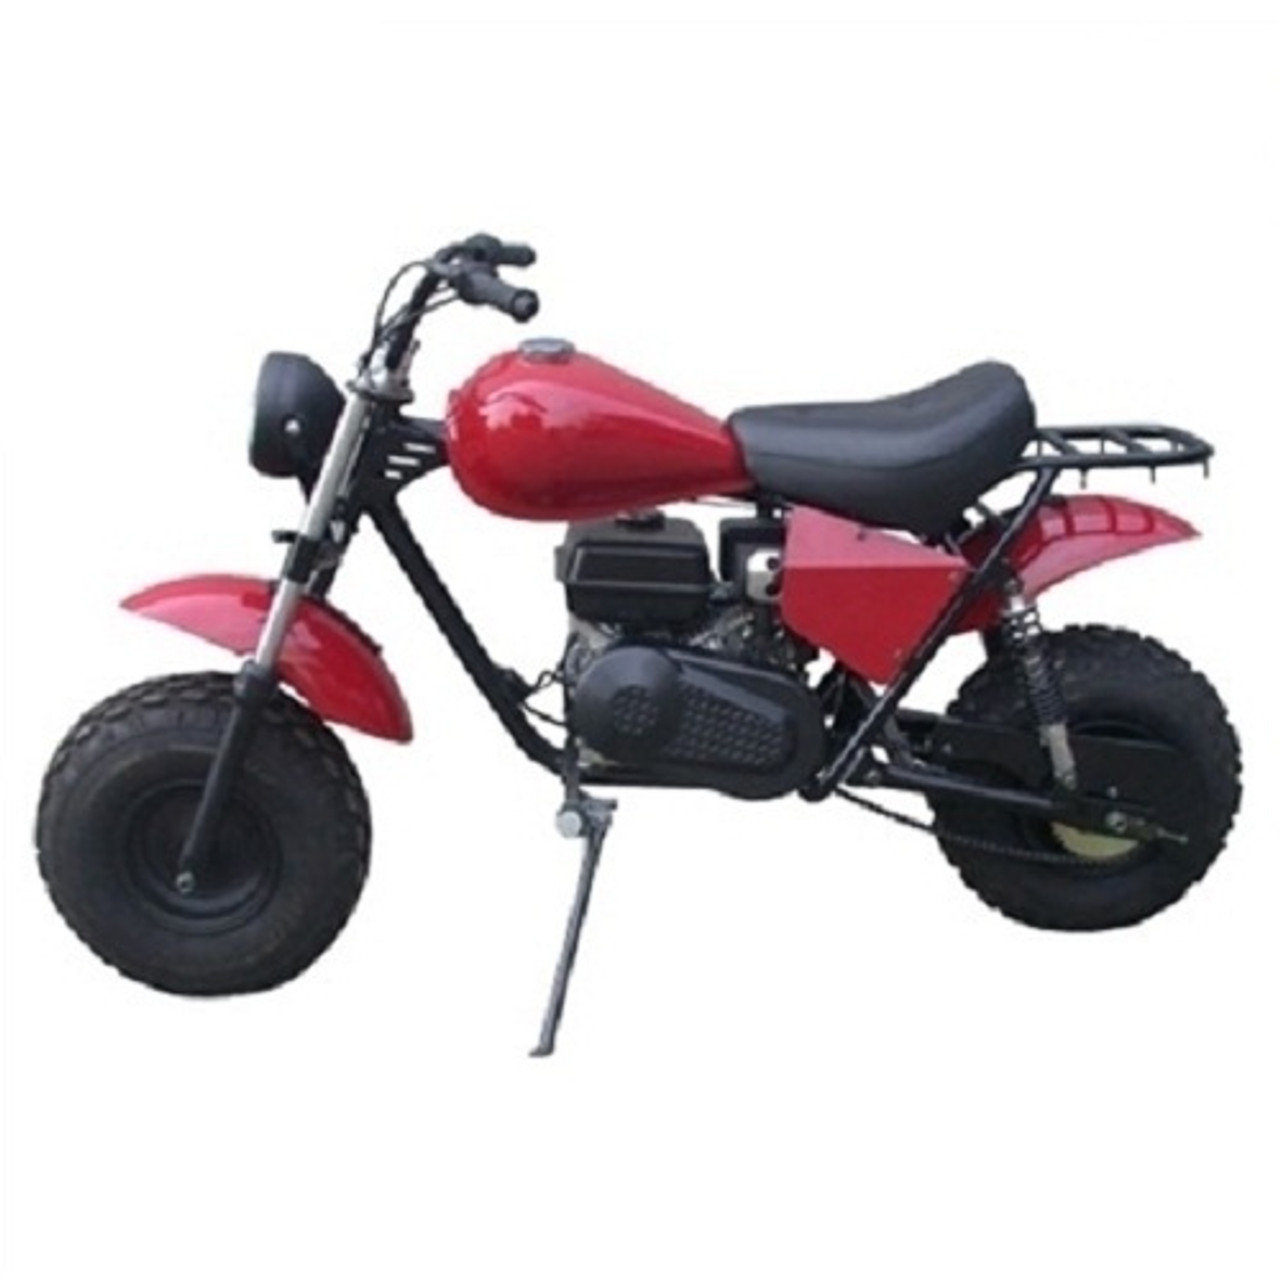 TRAILMASTER MB200-2 MINI BIKE, Air Cooled, Automatic Transmission,  Disc Brake System